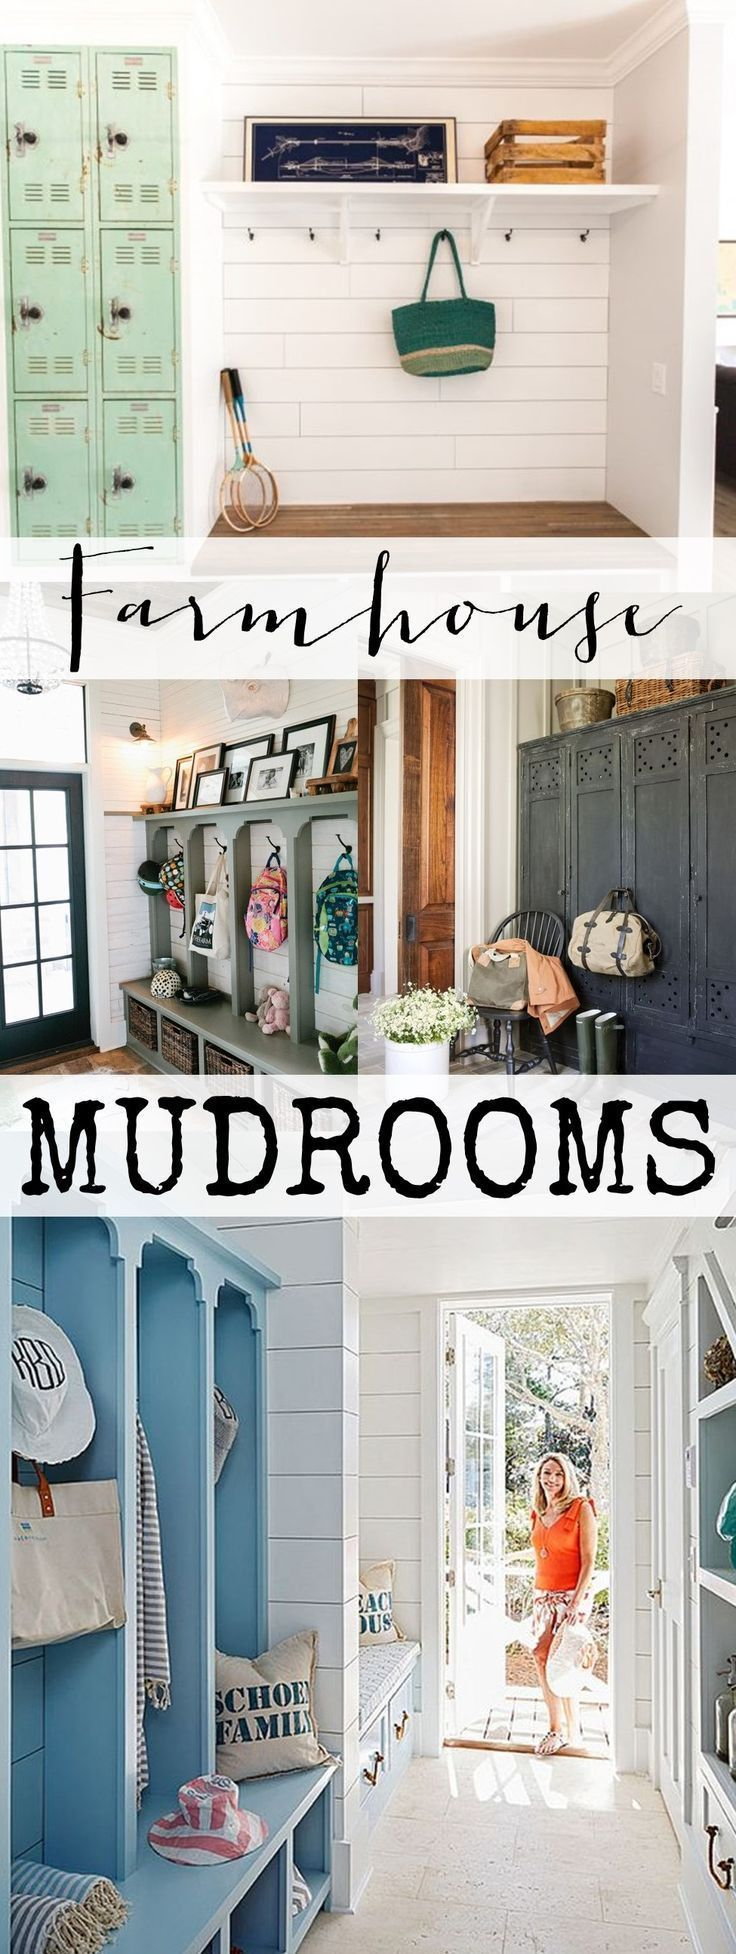 Superior 212 Best Mudrooms Images On Pinterest | Entrance Hall, Foyers And Laundry  Room